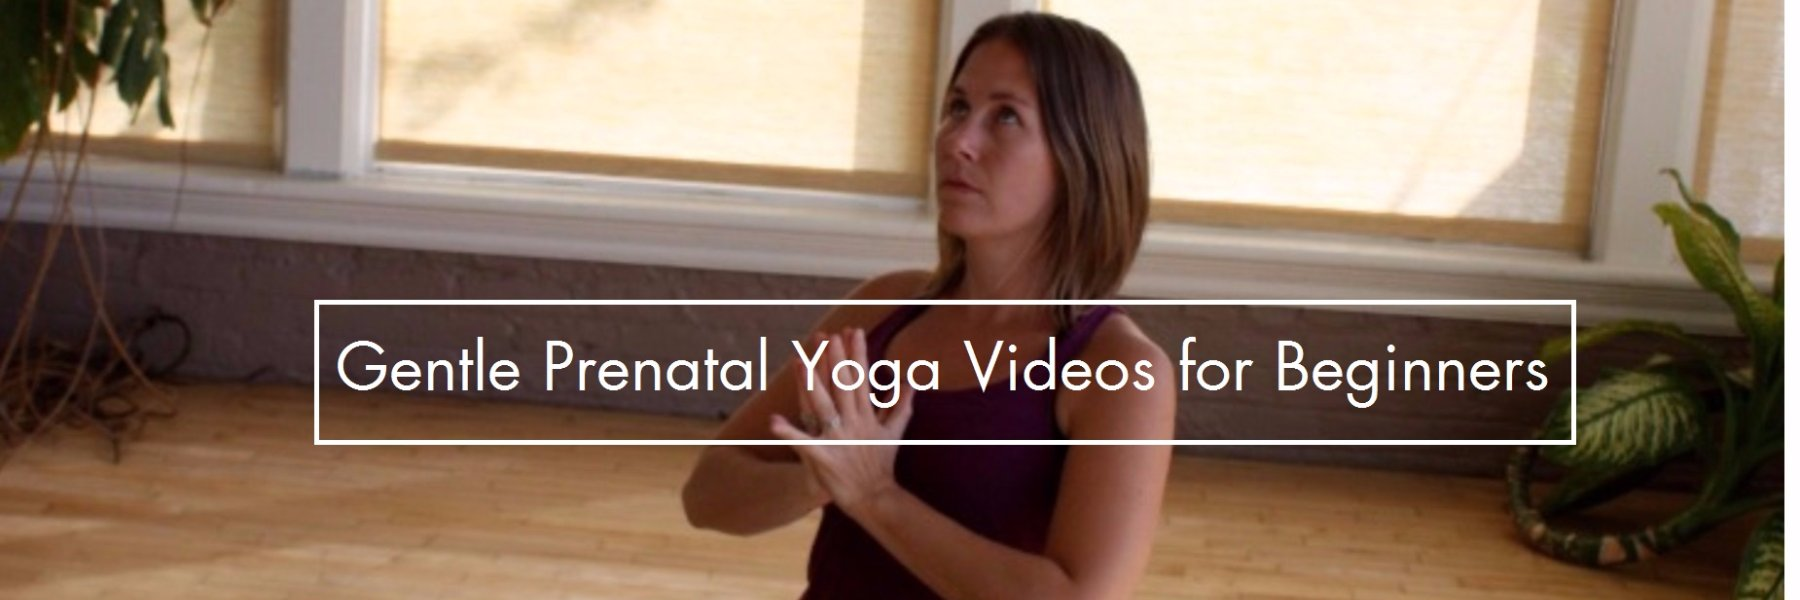 Gentle, restorative and easy yoga videos for pregnancy